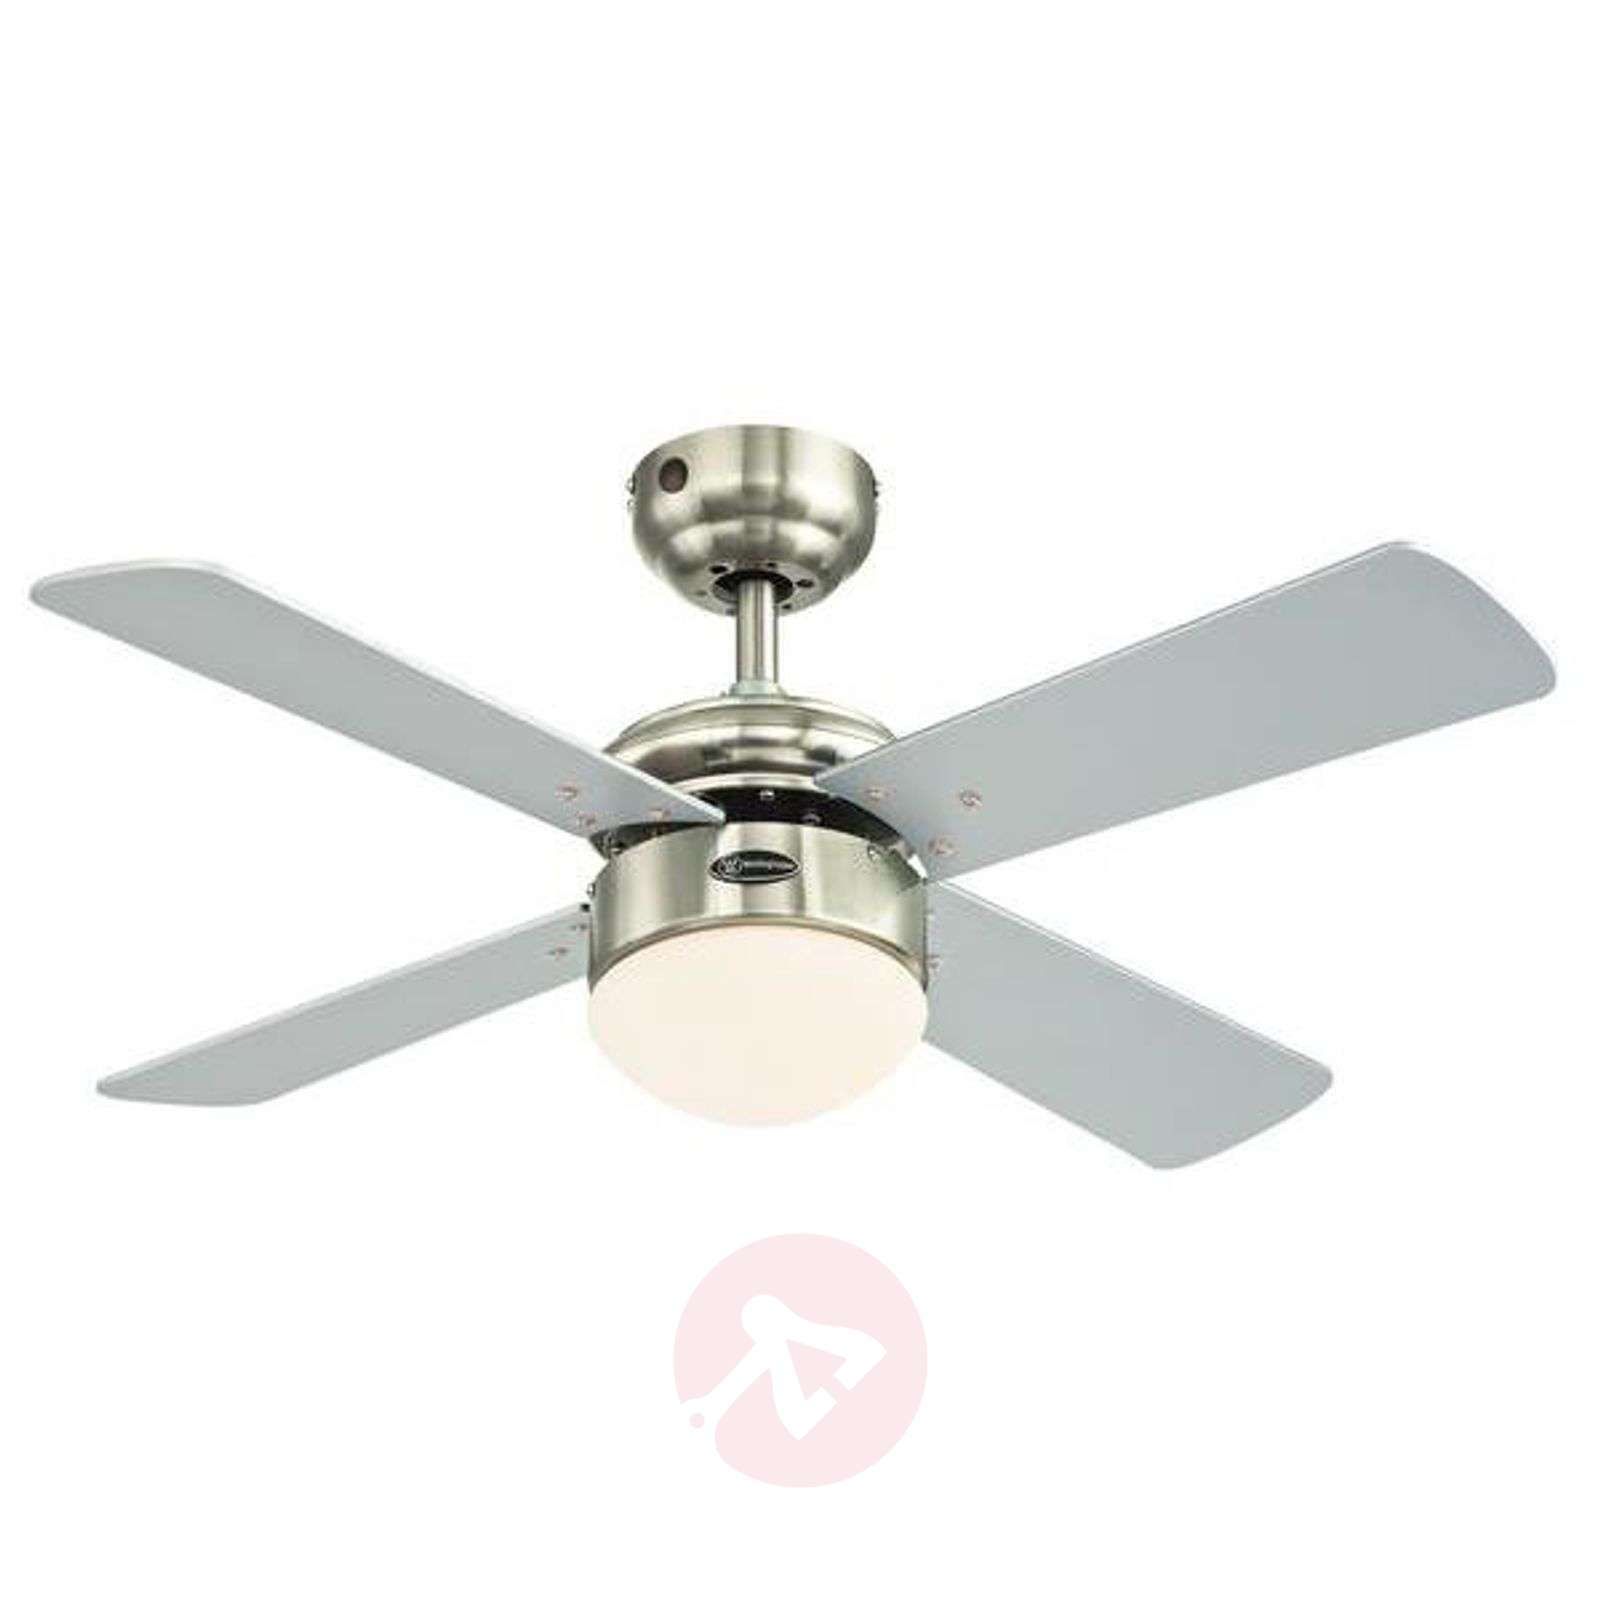 Ceiling Fan Colosseum With Led Light Lights Co Uk